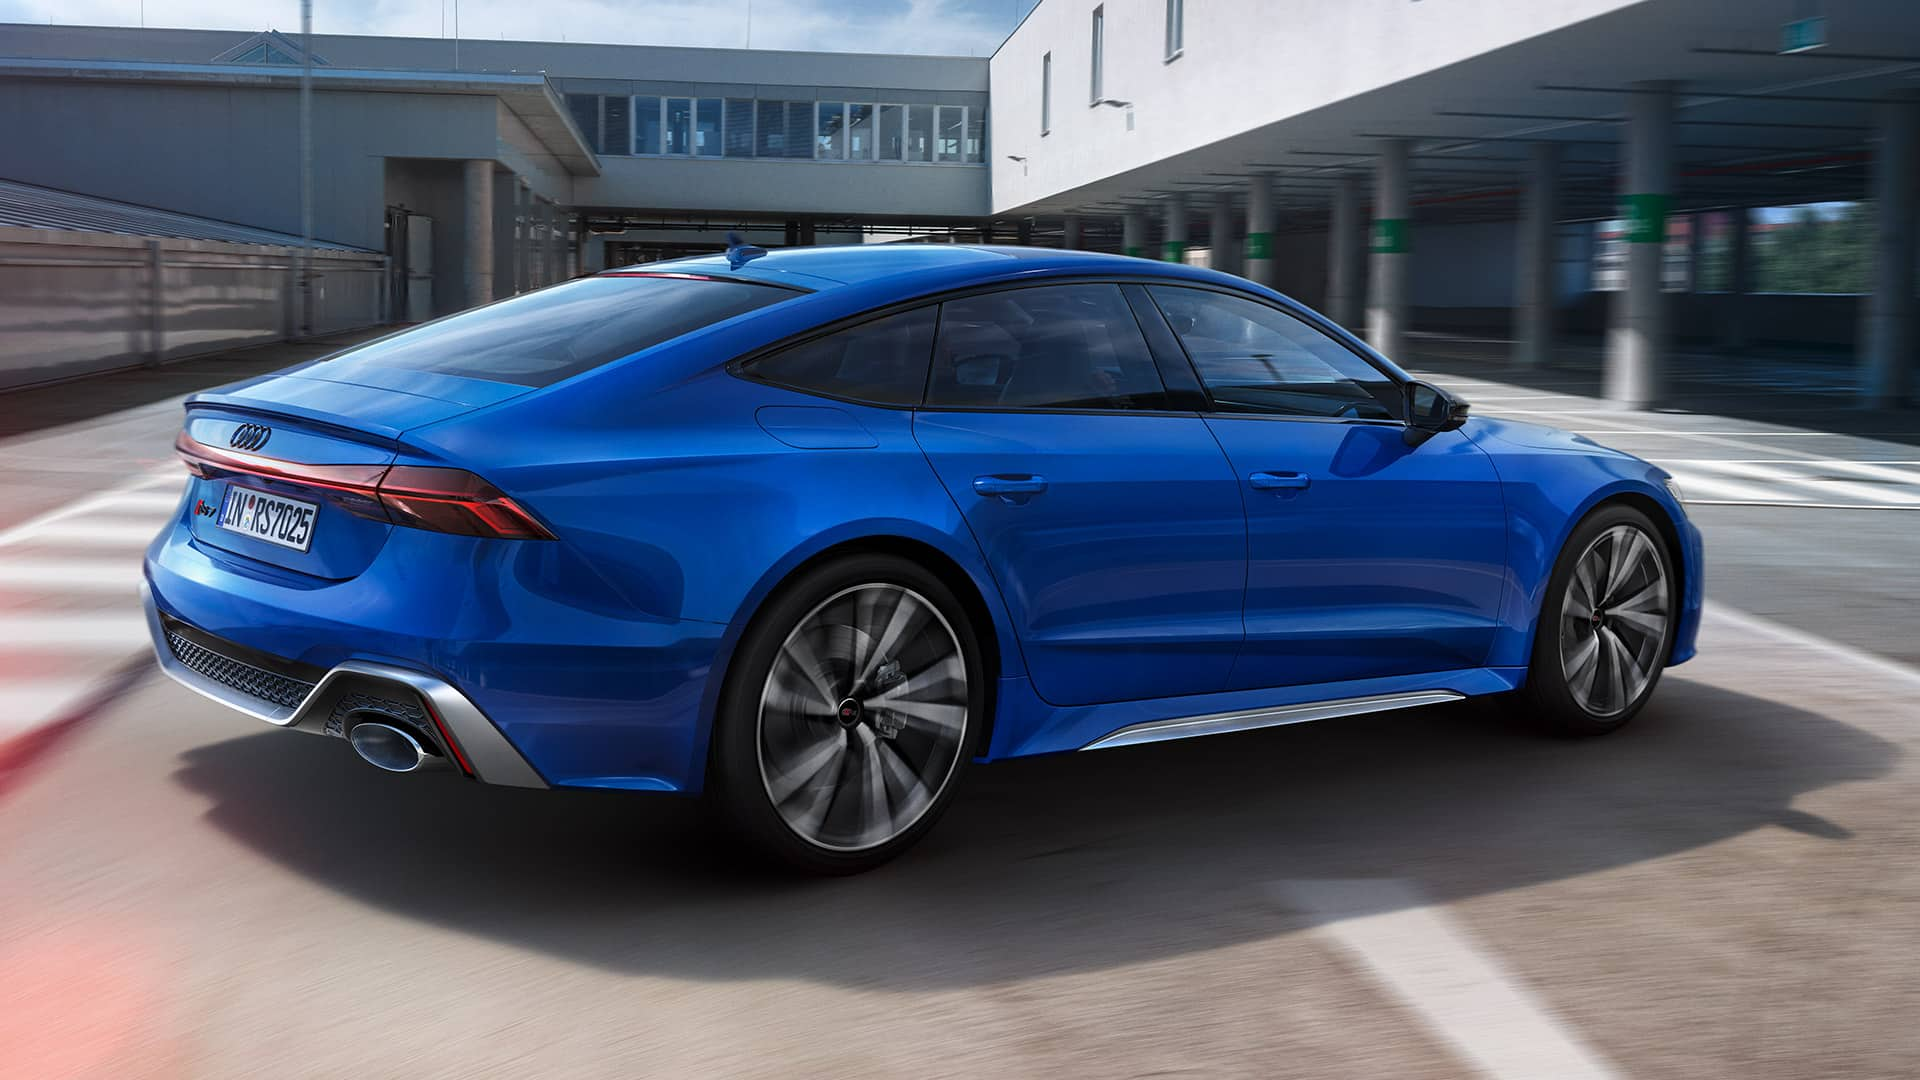 Exterieur Audi RS 7 Sportback 25 years